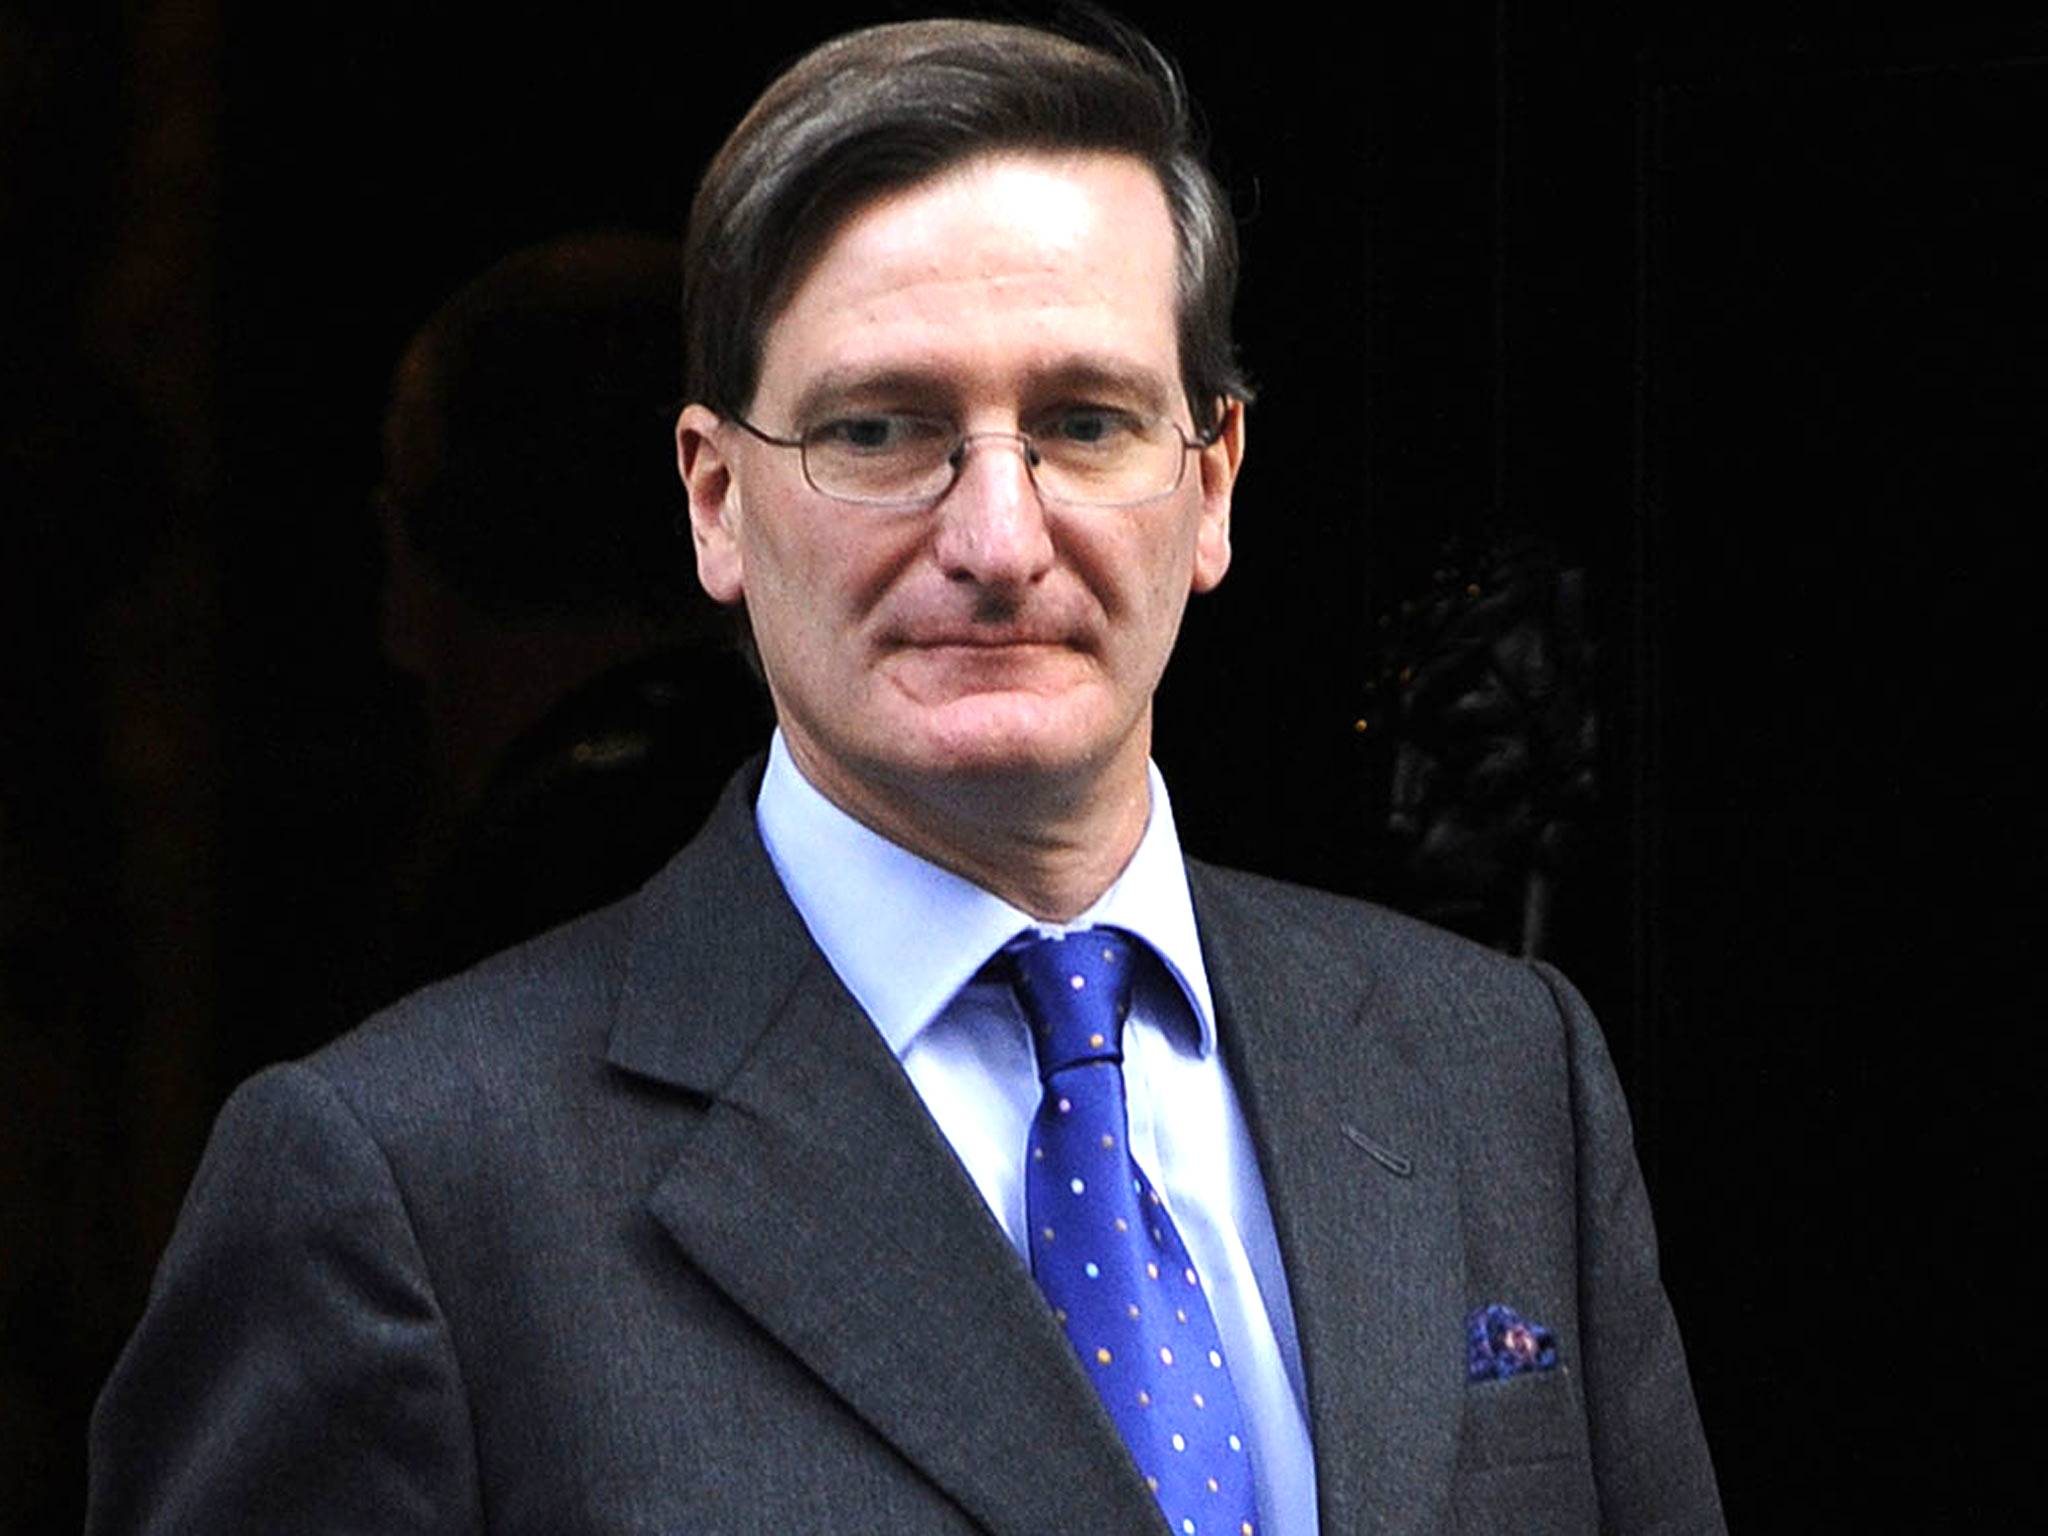 Dominic Grieve calls for greater 'political maturity' when government loses court cases